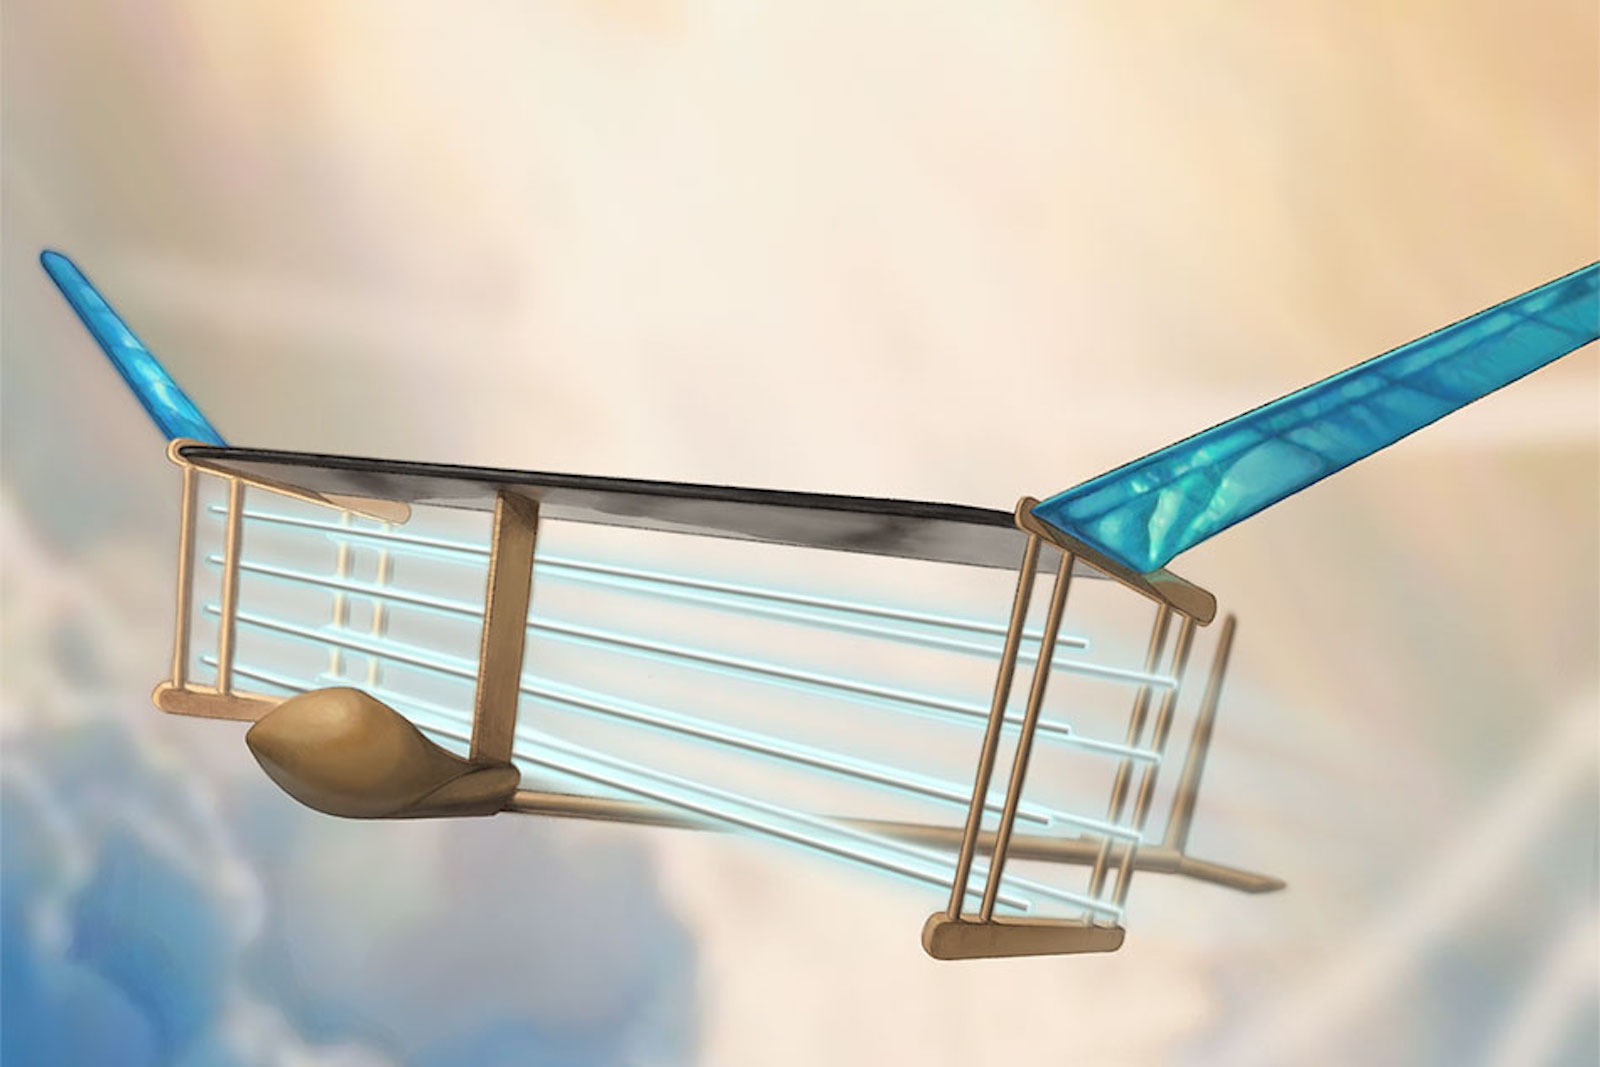 Mit Ion Plane Has No Moving Parts Doesnt Need An Engine To Fly Airplane Wing Theory Cnn Travel